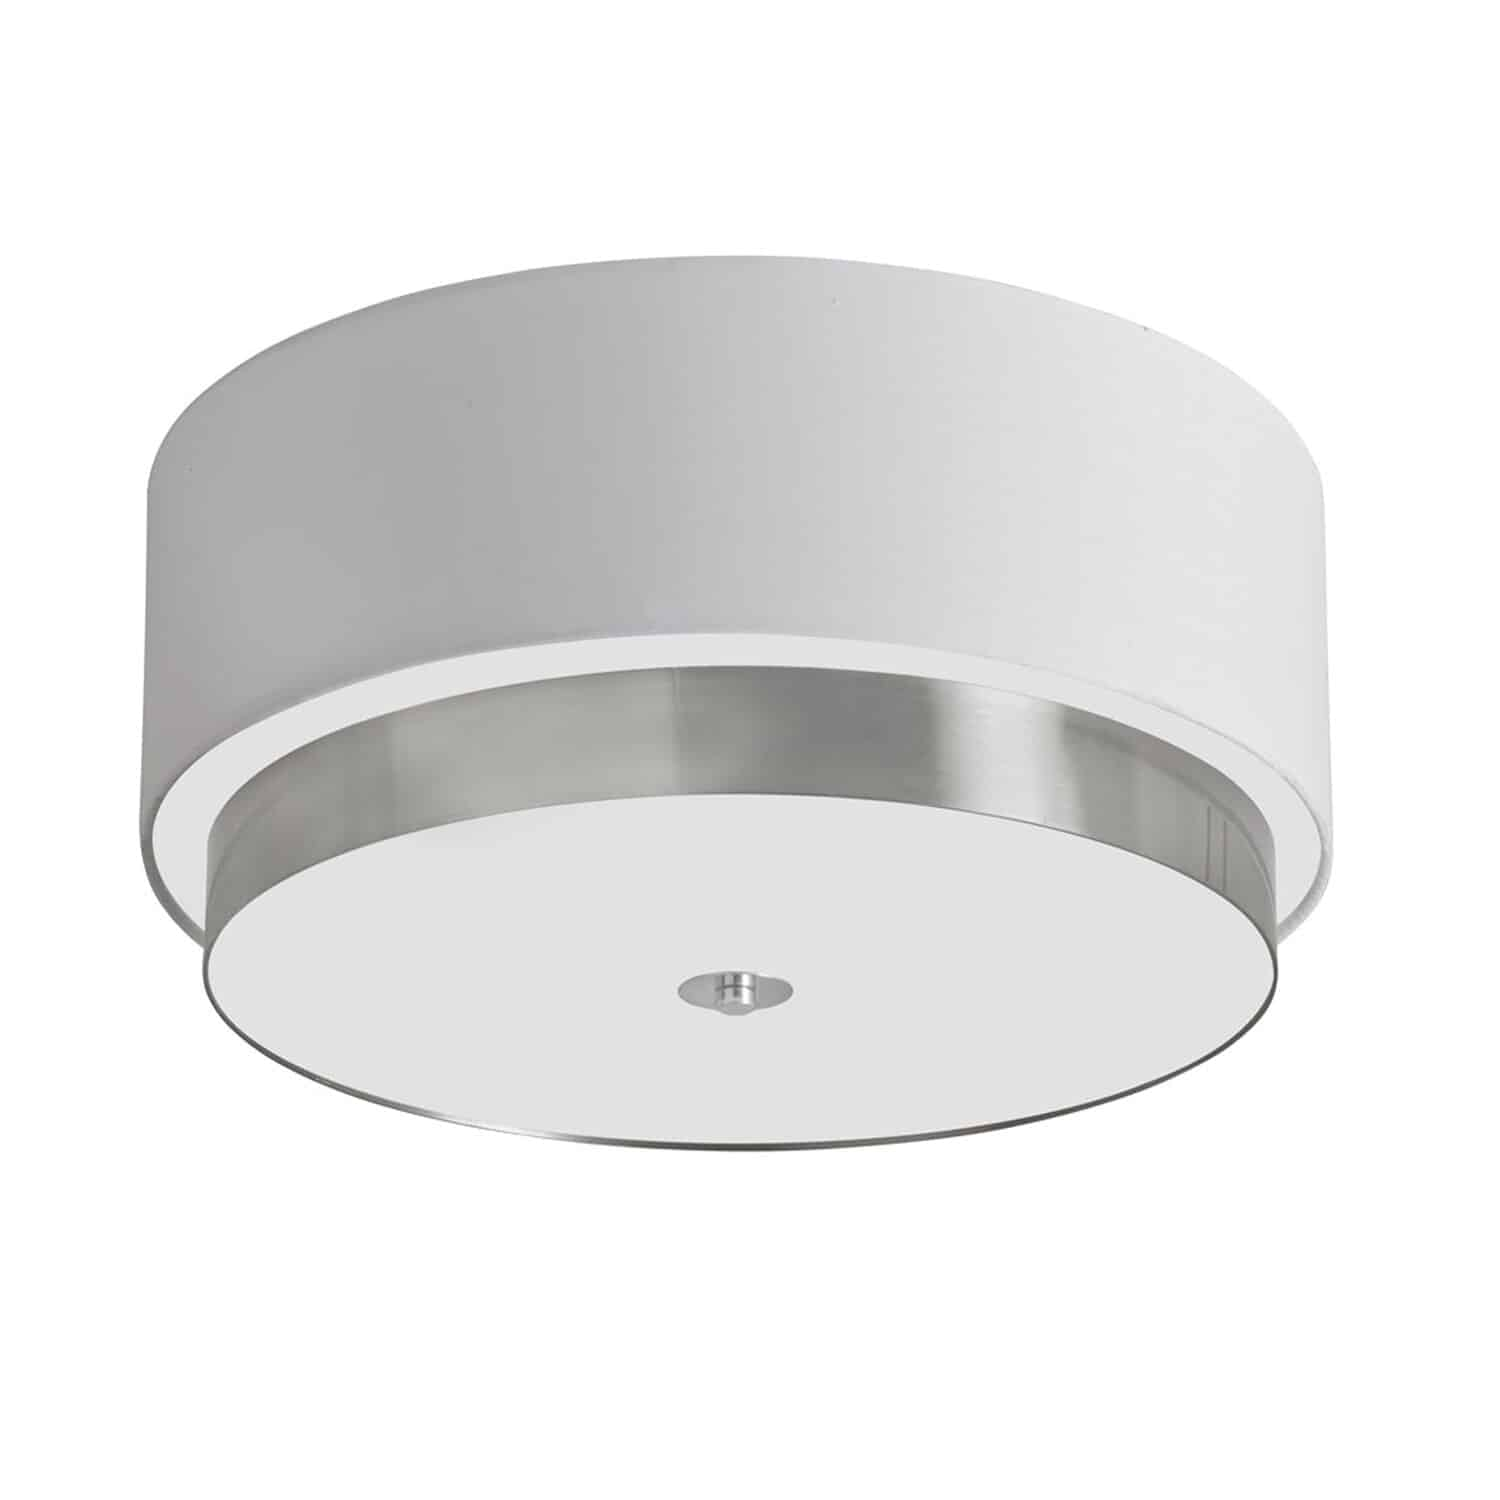 With its curved lines and modernistic feel, the Larkin line of lighting is reminiscent of one of the first buildings designed by Frank Lloyd Wright. Like the work of the famous architect, the Larkin line of lighting features an elegant sense of balance, featuring white frosted glass or drum shades contrasted with dark or metallic frames and the curved lines of the shades with the straight geometry of the frames.  Larkin lighting comes in a full range of configurations suitable for any room in the house and blends easily with contemporary or mid-century design schemes.